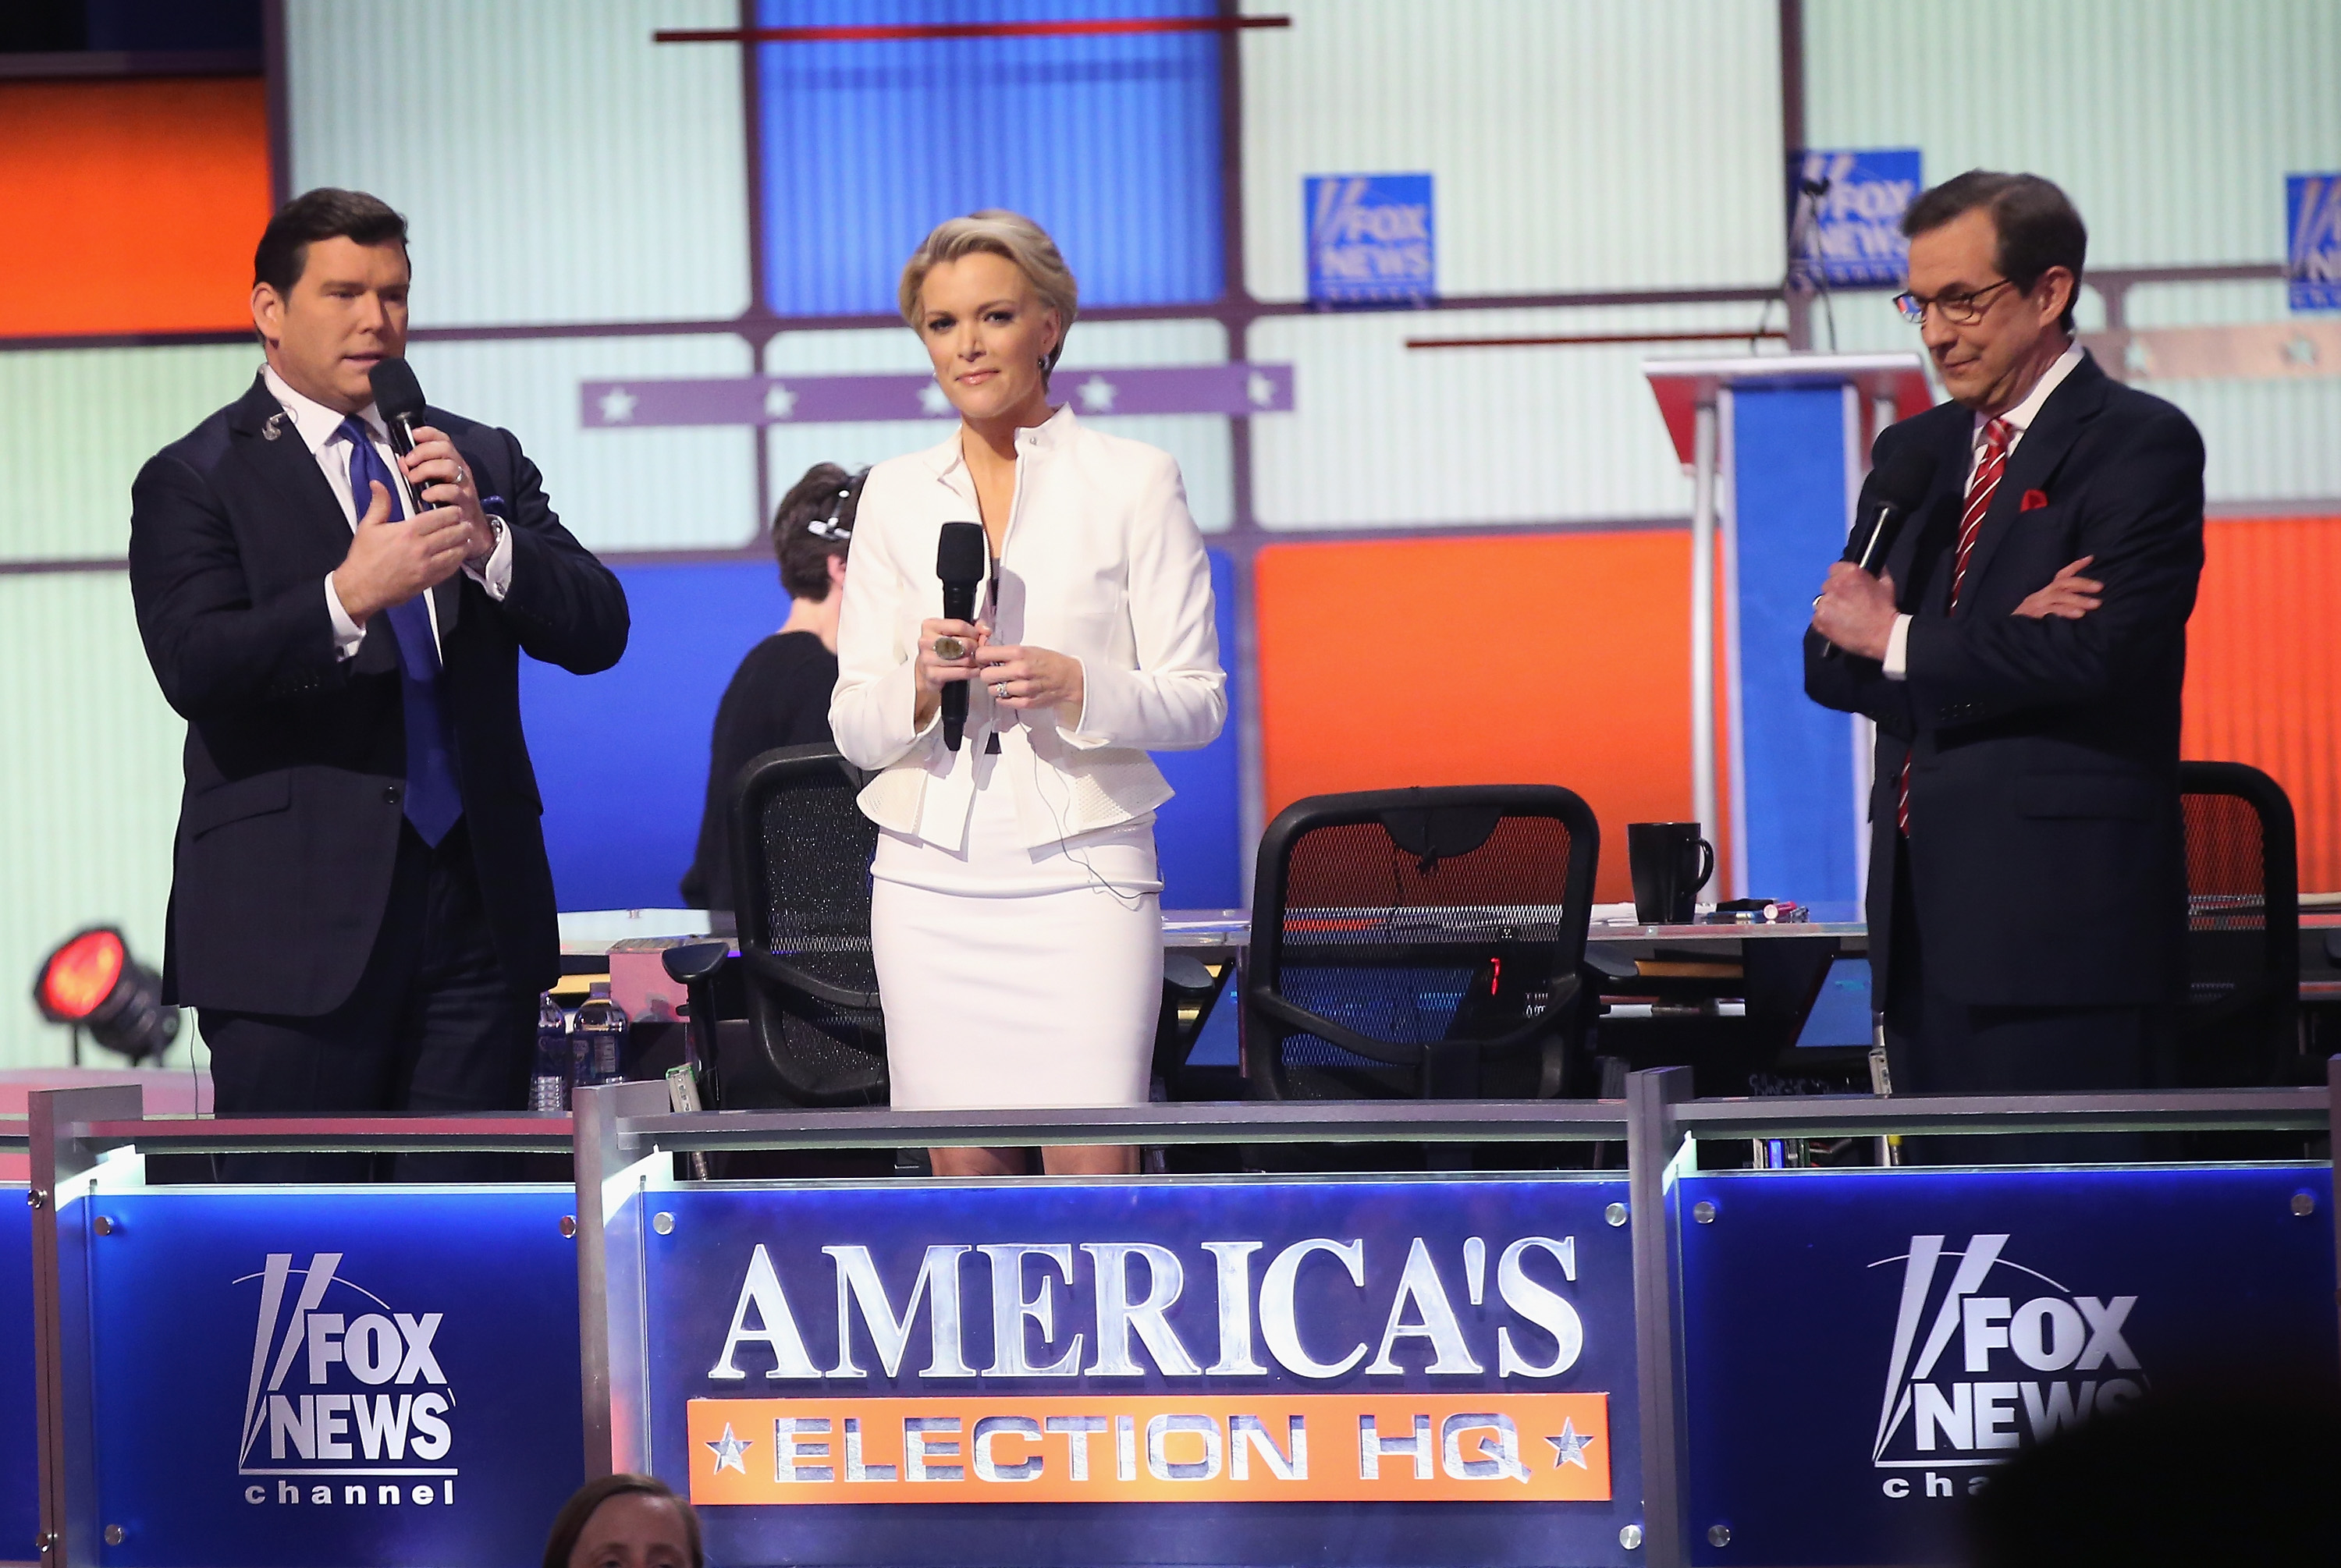 Democrats say no to Fox News hosting a primary debate